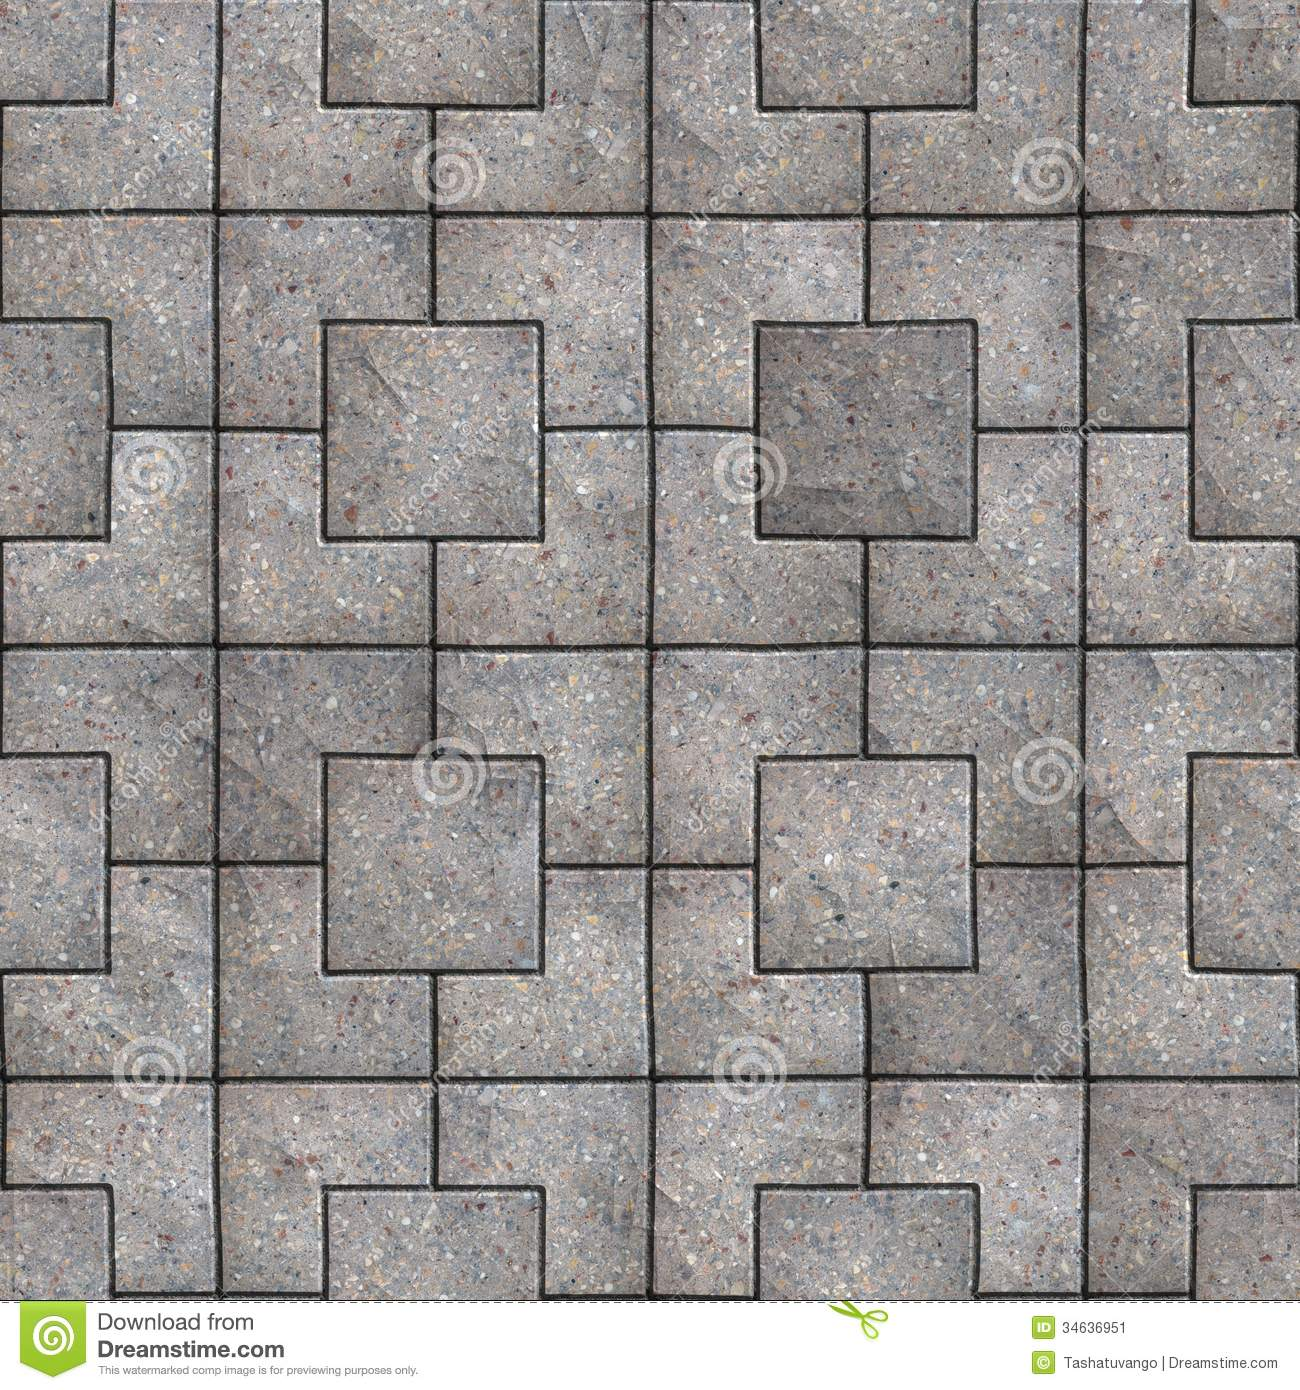 Paving Slabs Seamless Tileable Texture Stock Image